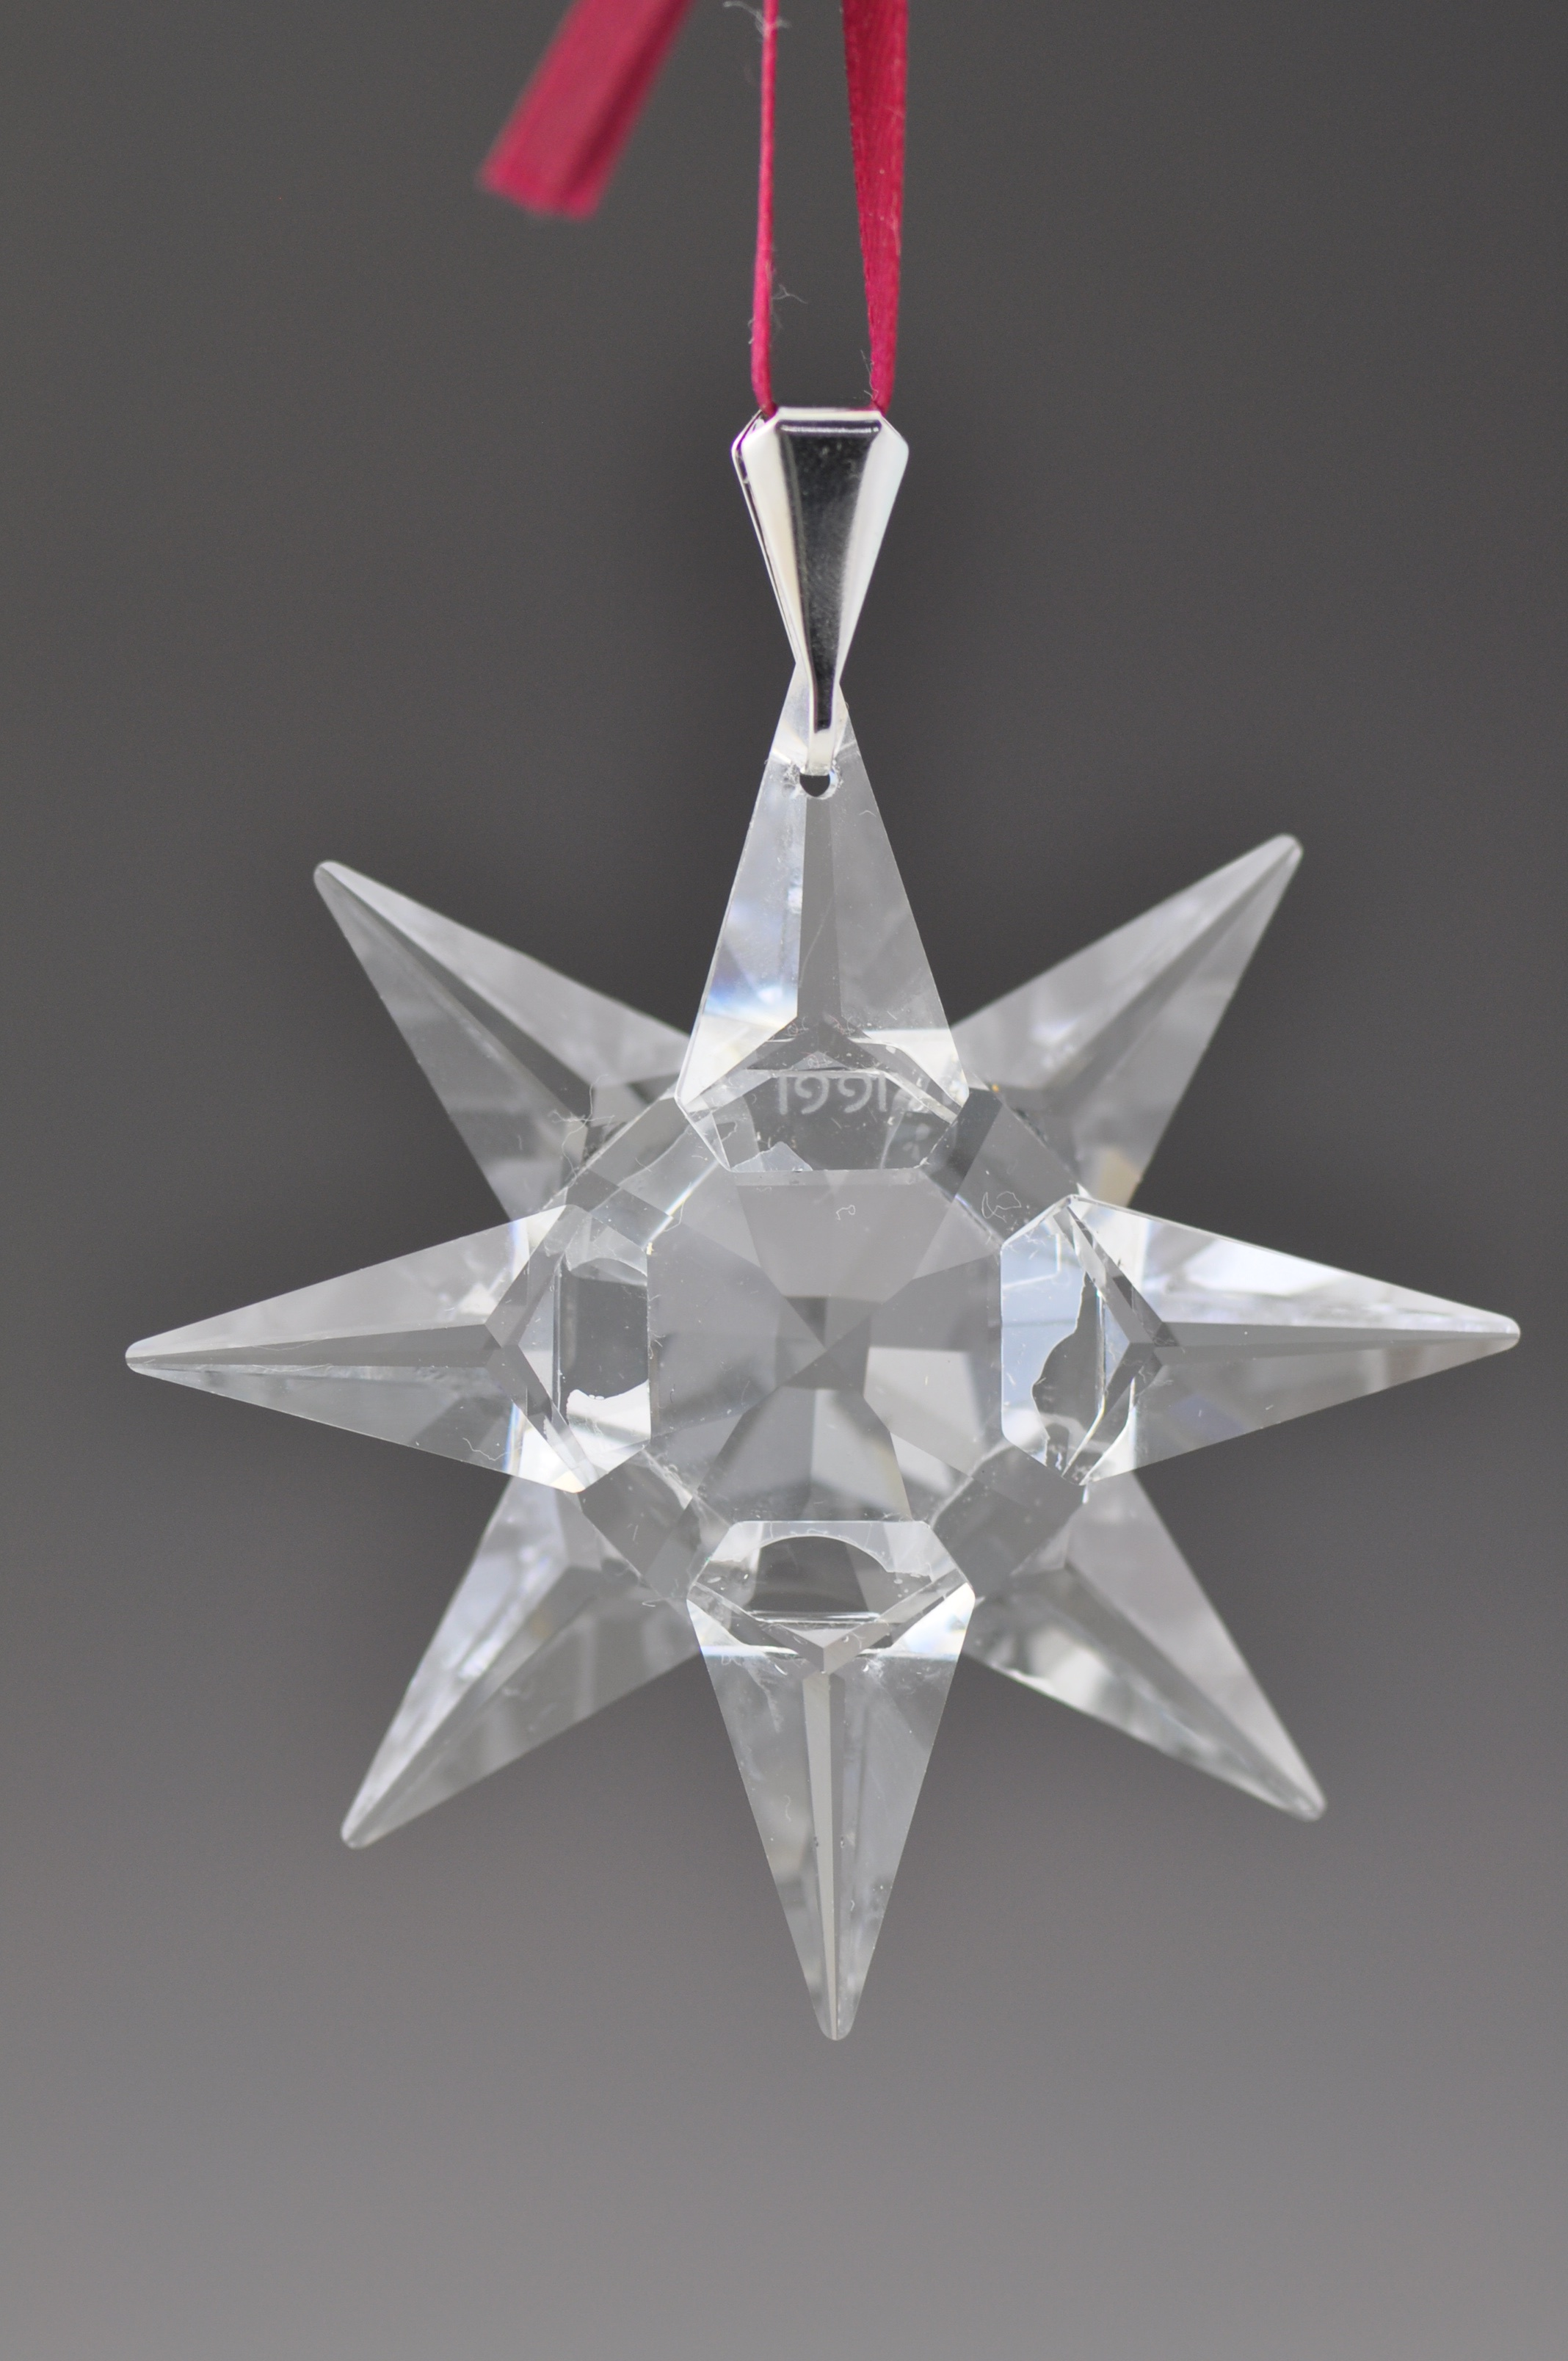 1991 Swarovski Christmas Ornament